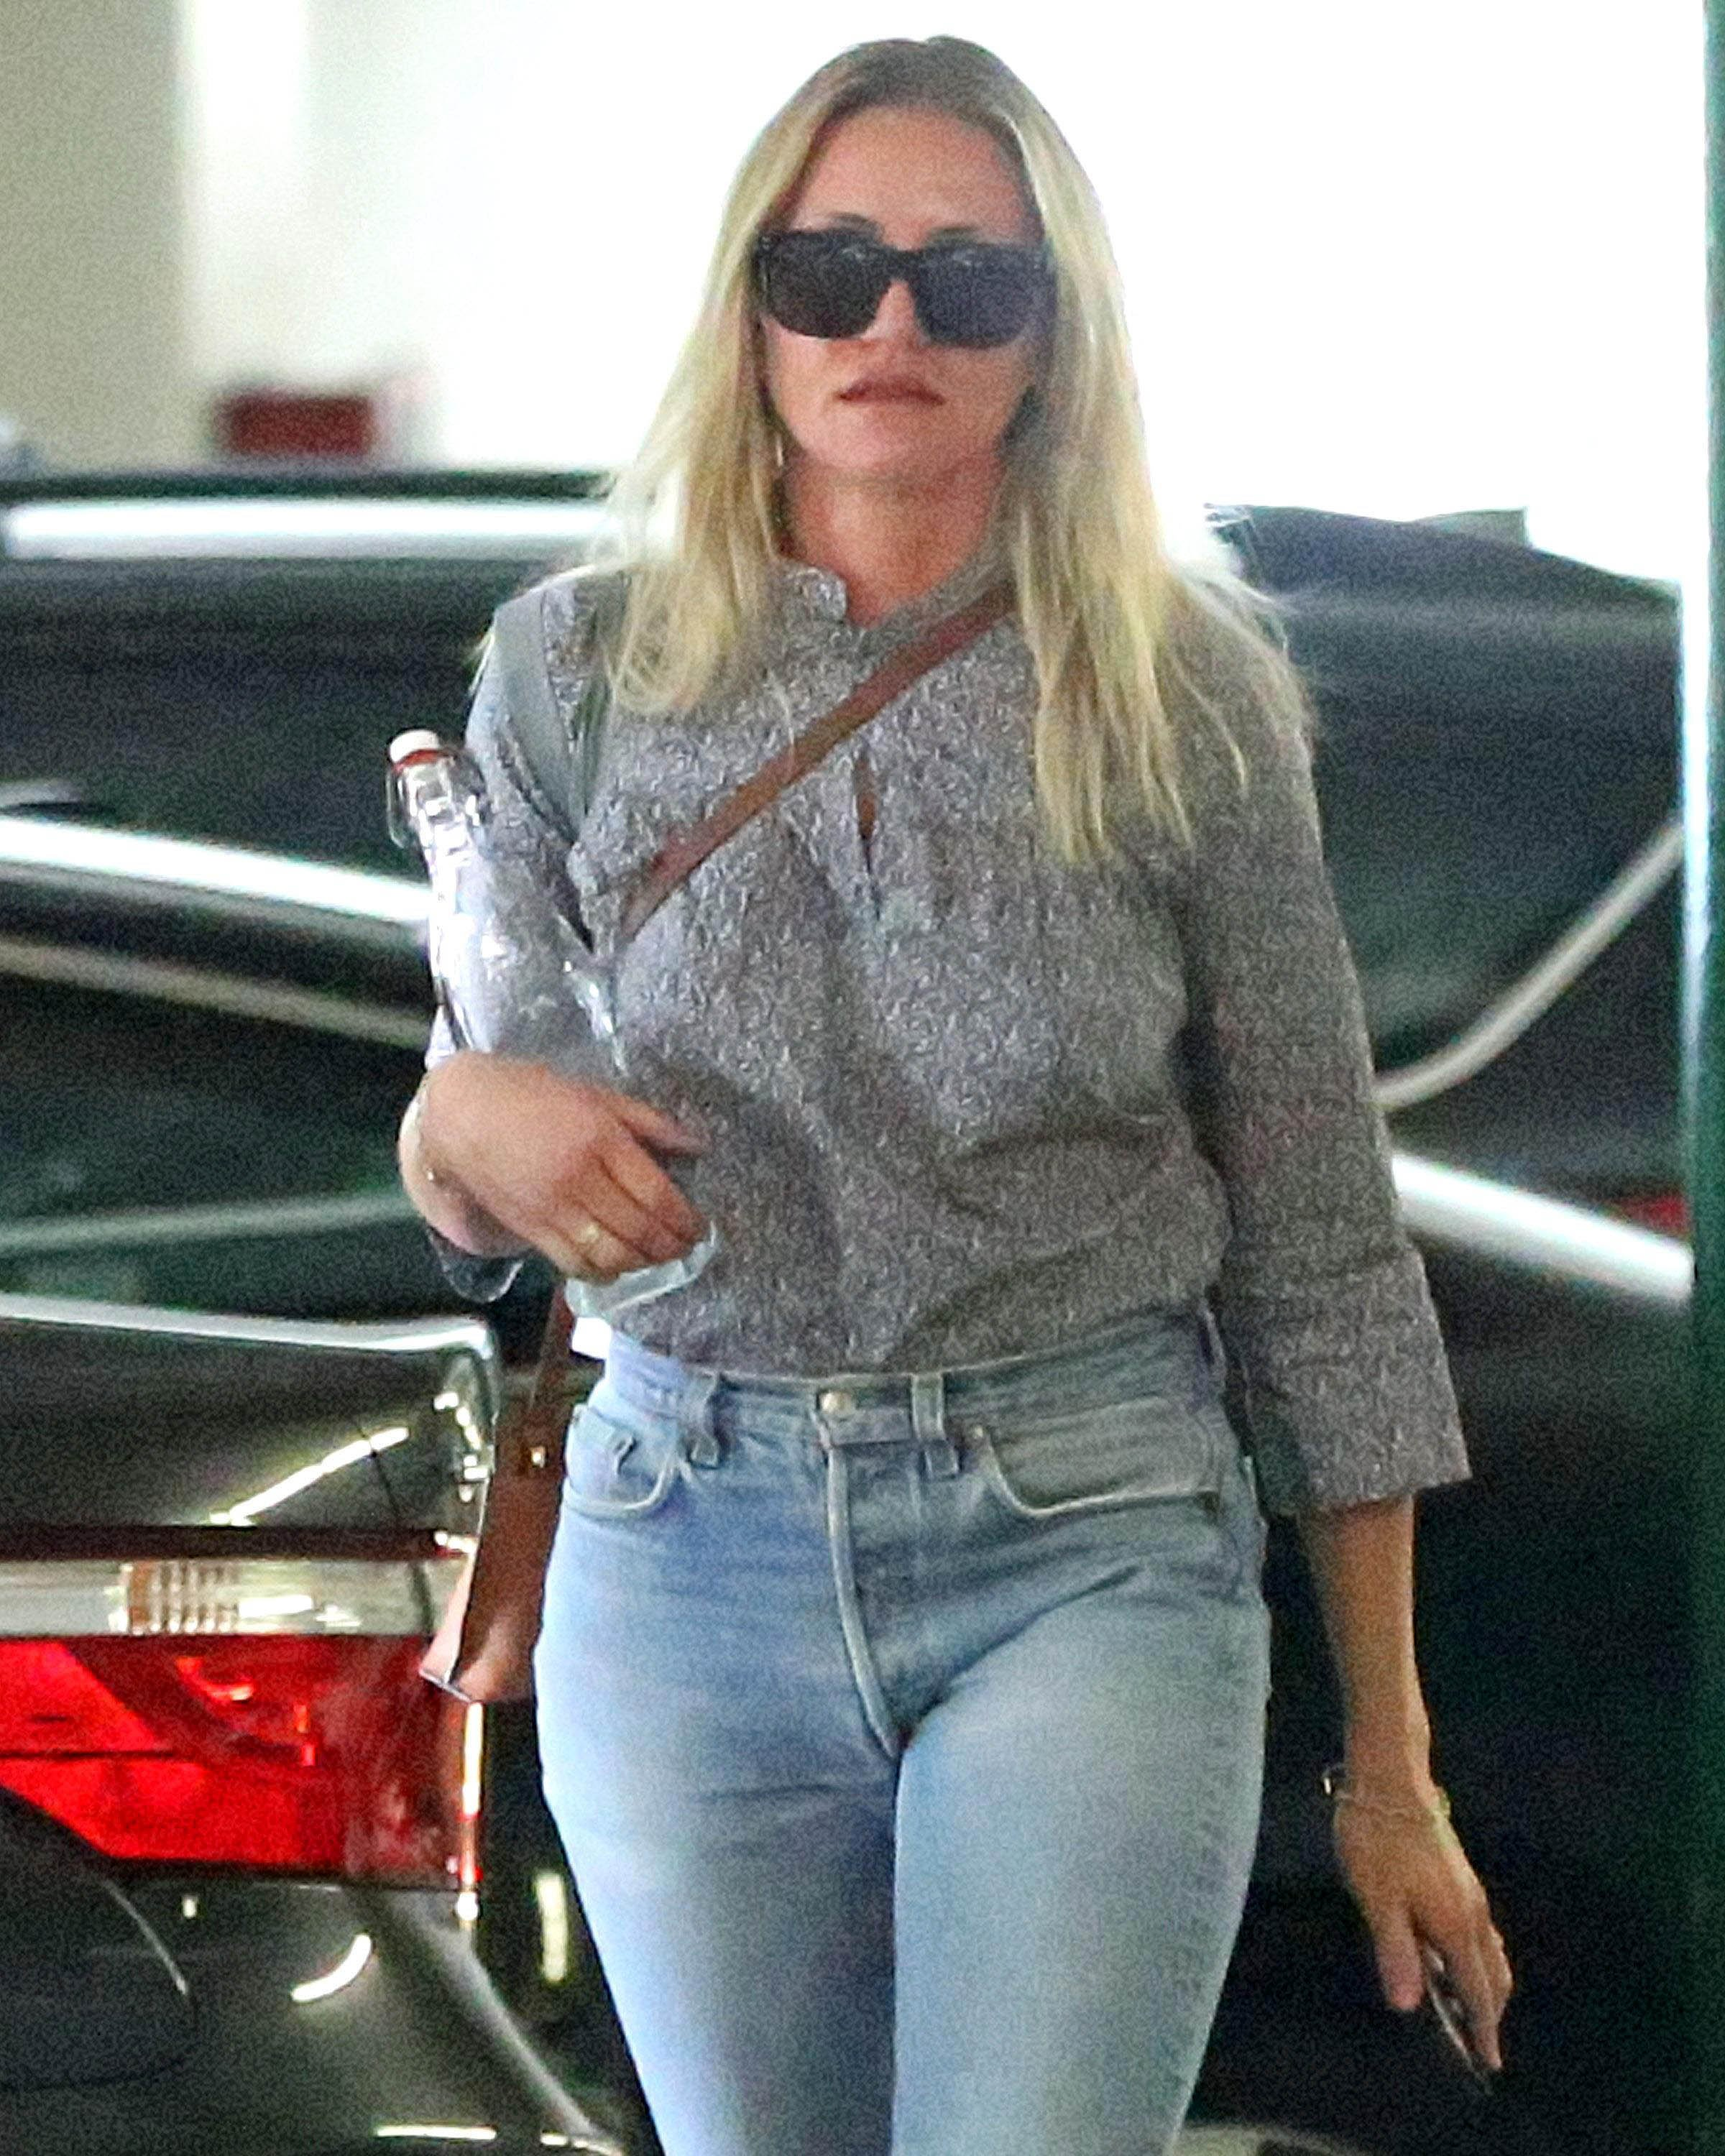 Exclusive, Los Angeles, CA - 8/18/2017 - Cameron Diaz Carrying a Glass Water Bottle as she Arrives for a Meeting  -PICTURED: Cameron Diaz -, Image: 346026335, License: Rights-managed, Restrictions: Exclusive, Model Release: no, Credit line: Profimedia, INSTAR Images